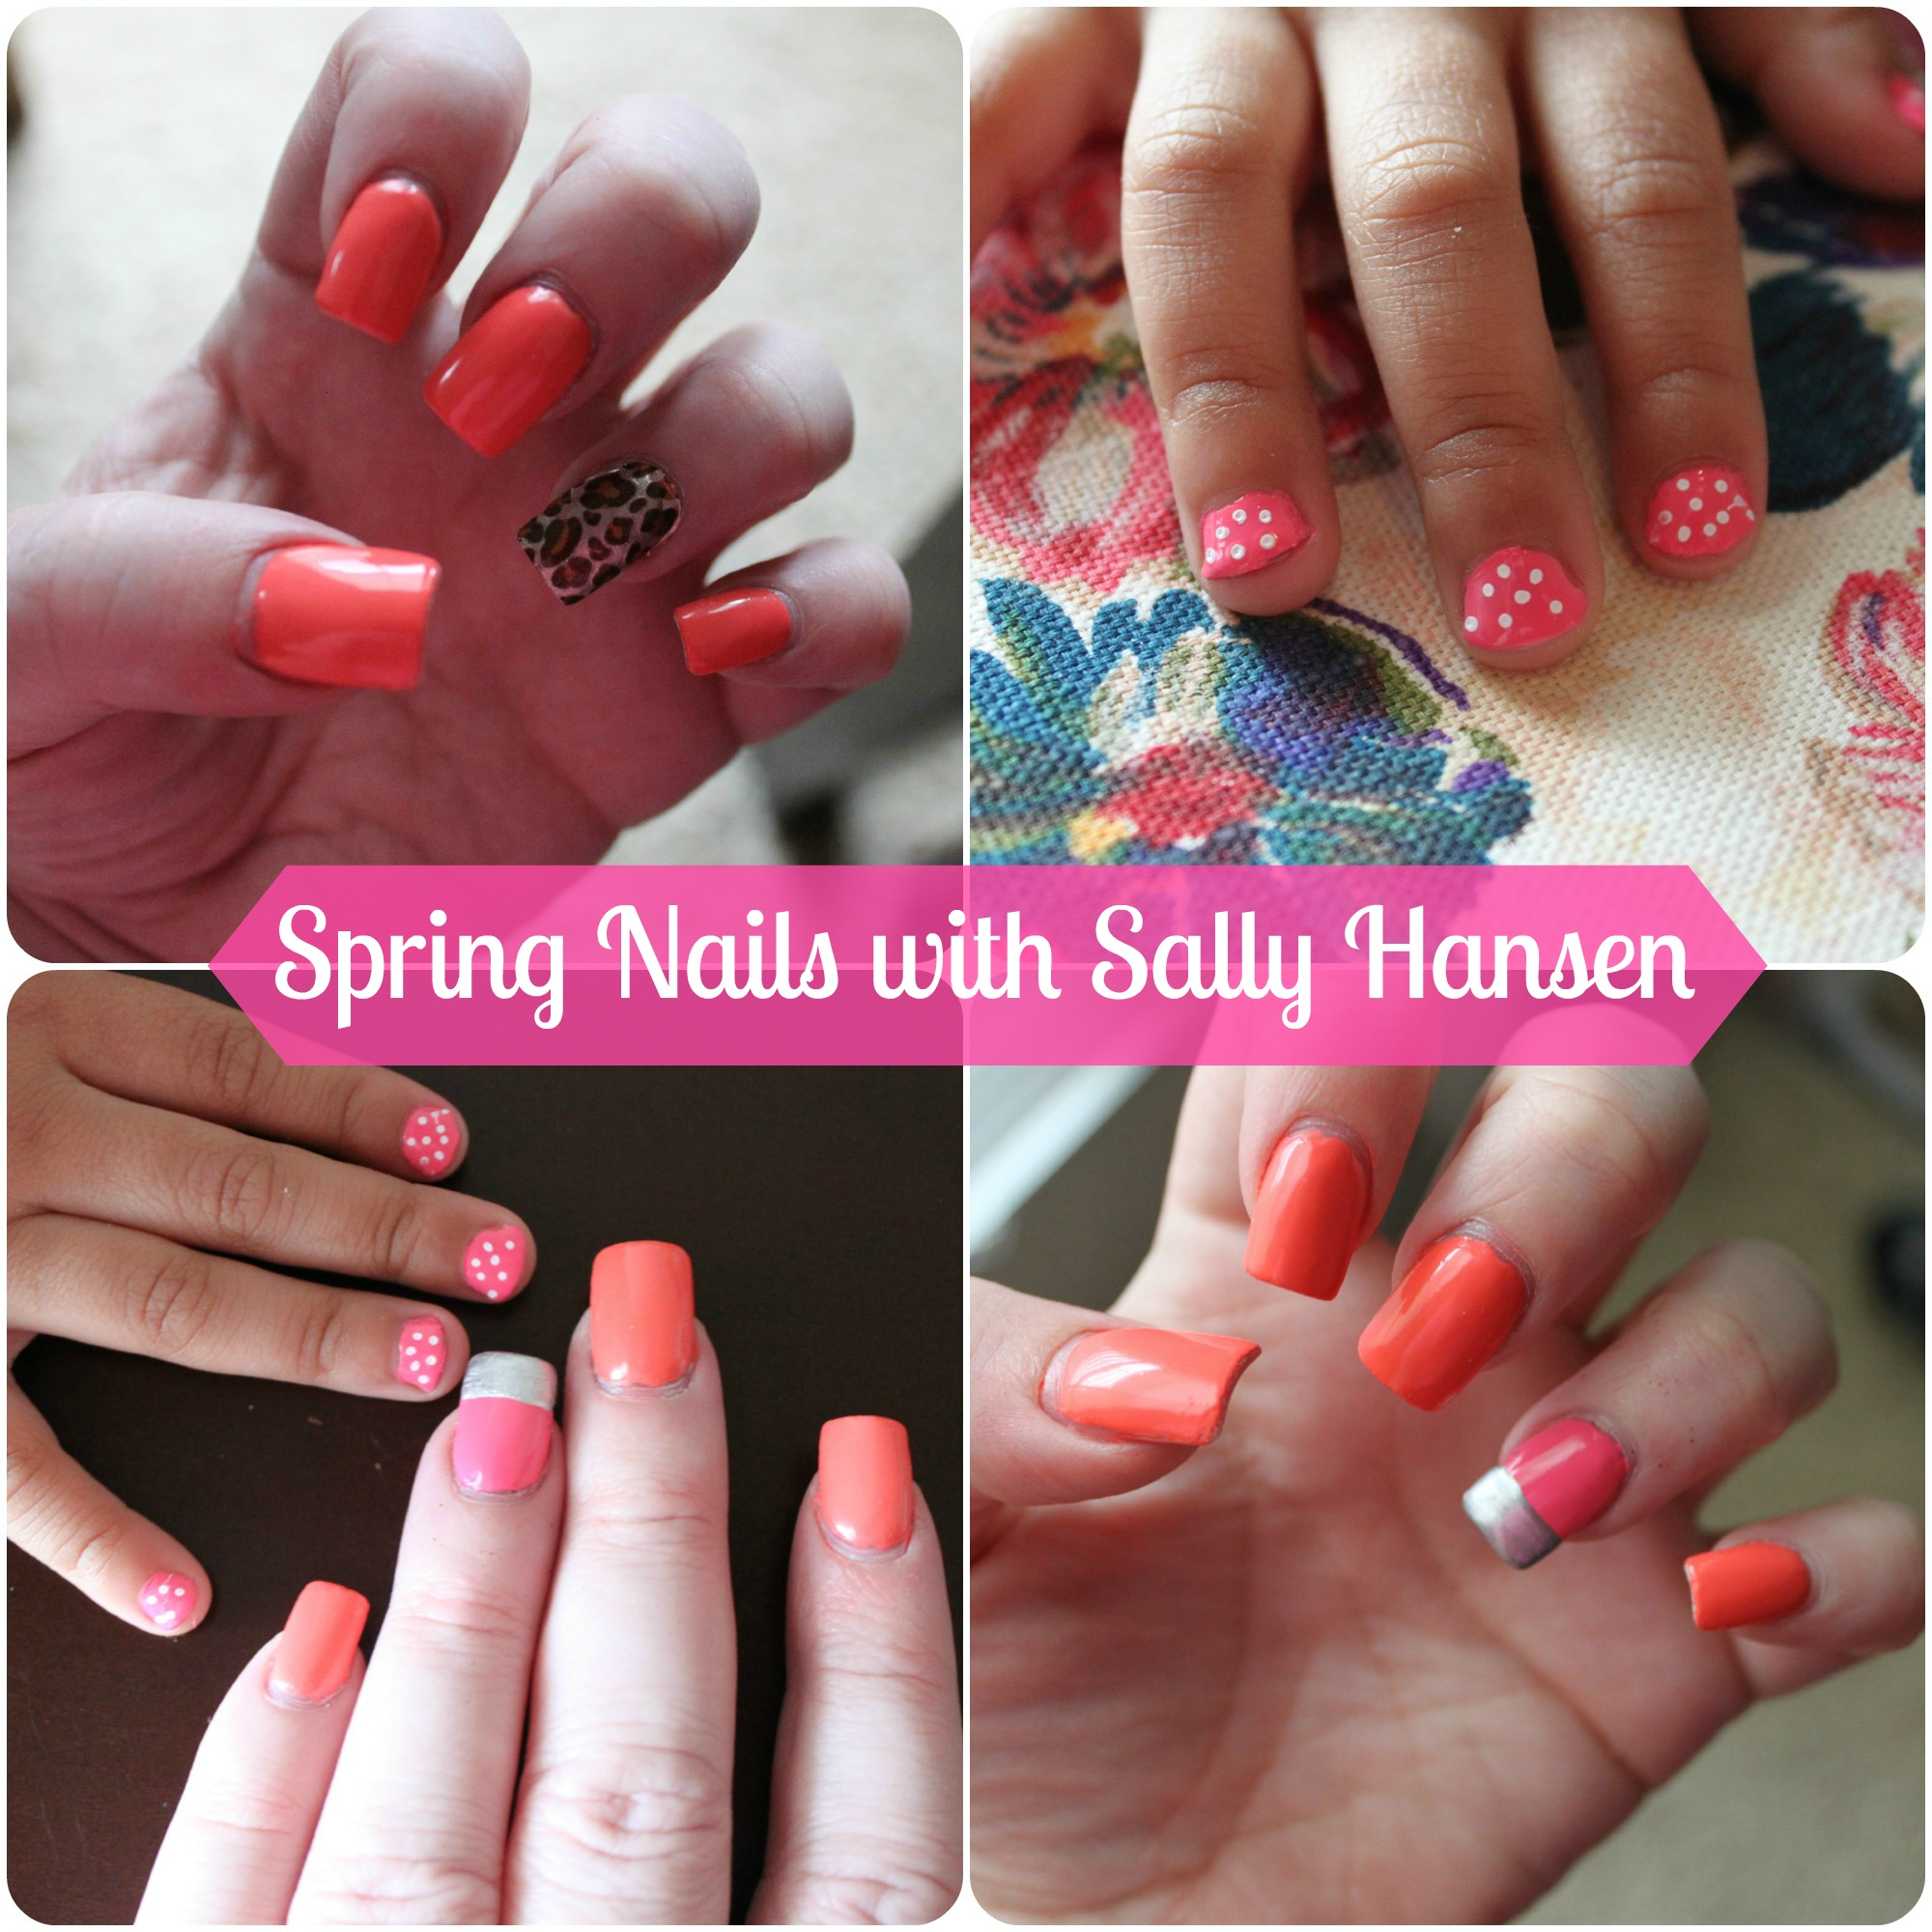 Runway inspired nails with Sally Hansen